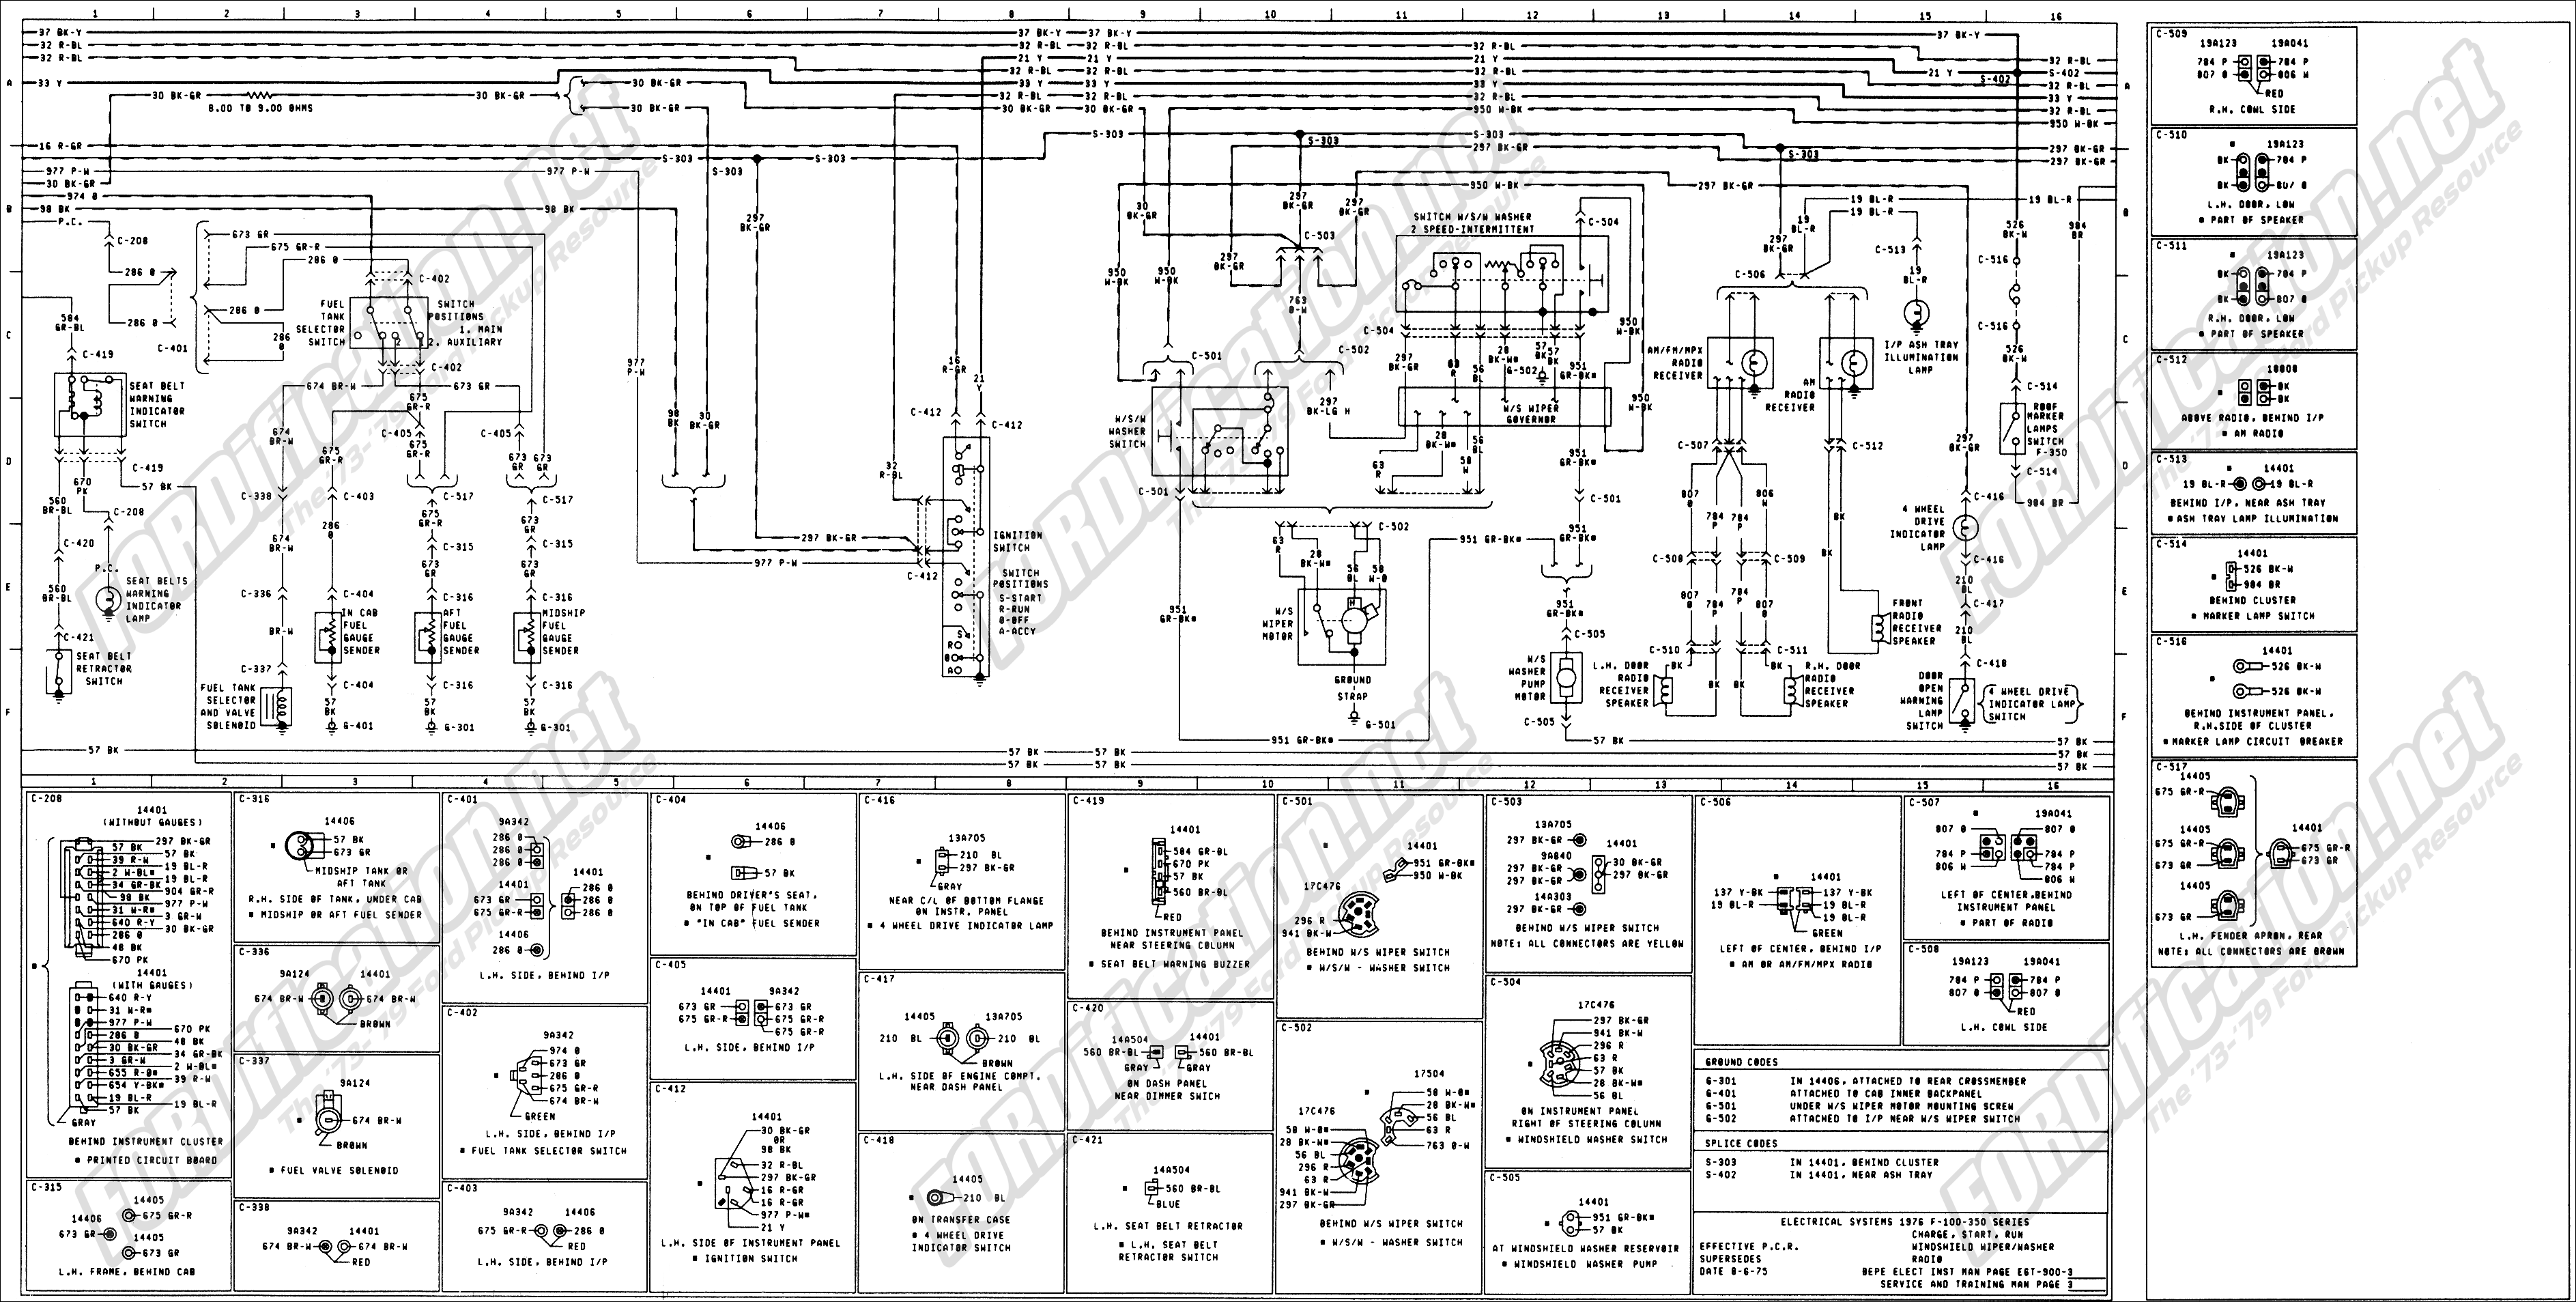 wiring_76master_3of9 1973 ford f250 wiring diagram ford f 150 starter wiring diagram ford truck wiring diagrams free at webbmarketing.co